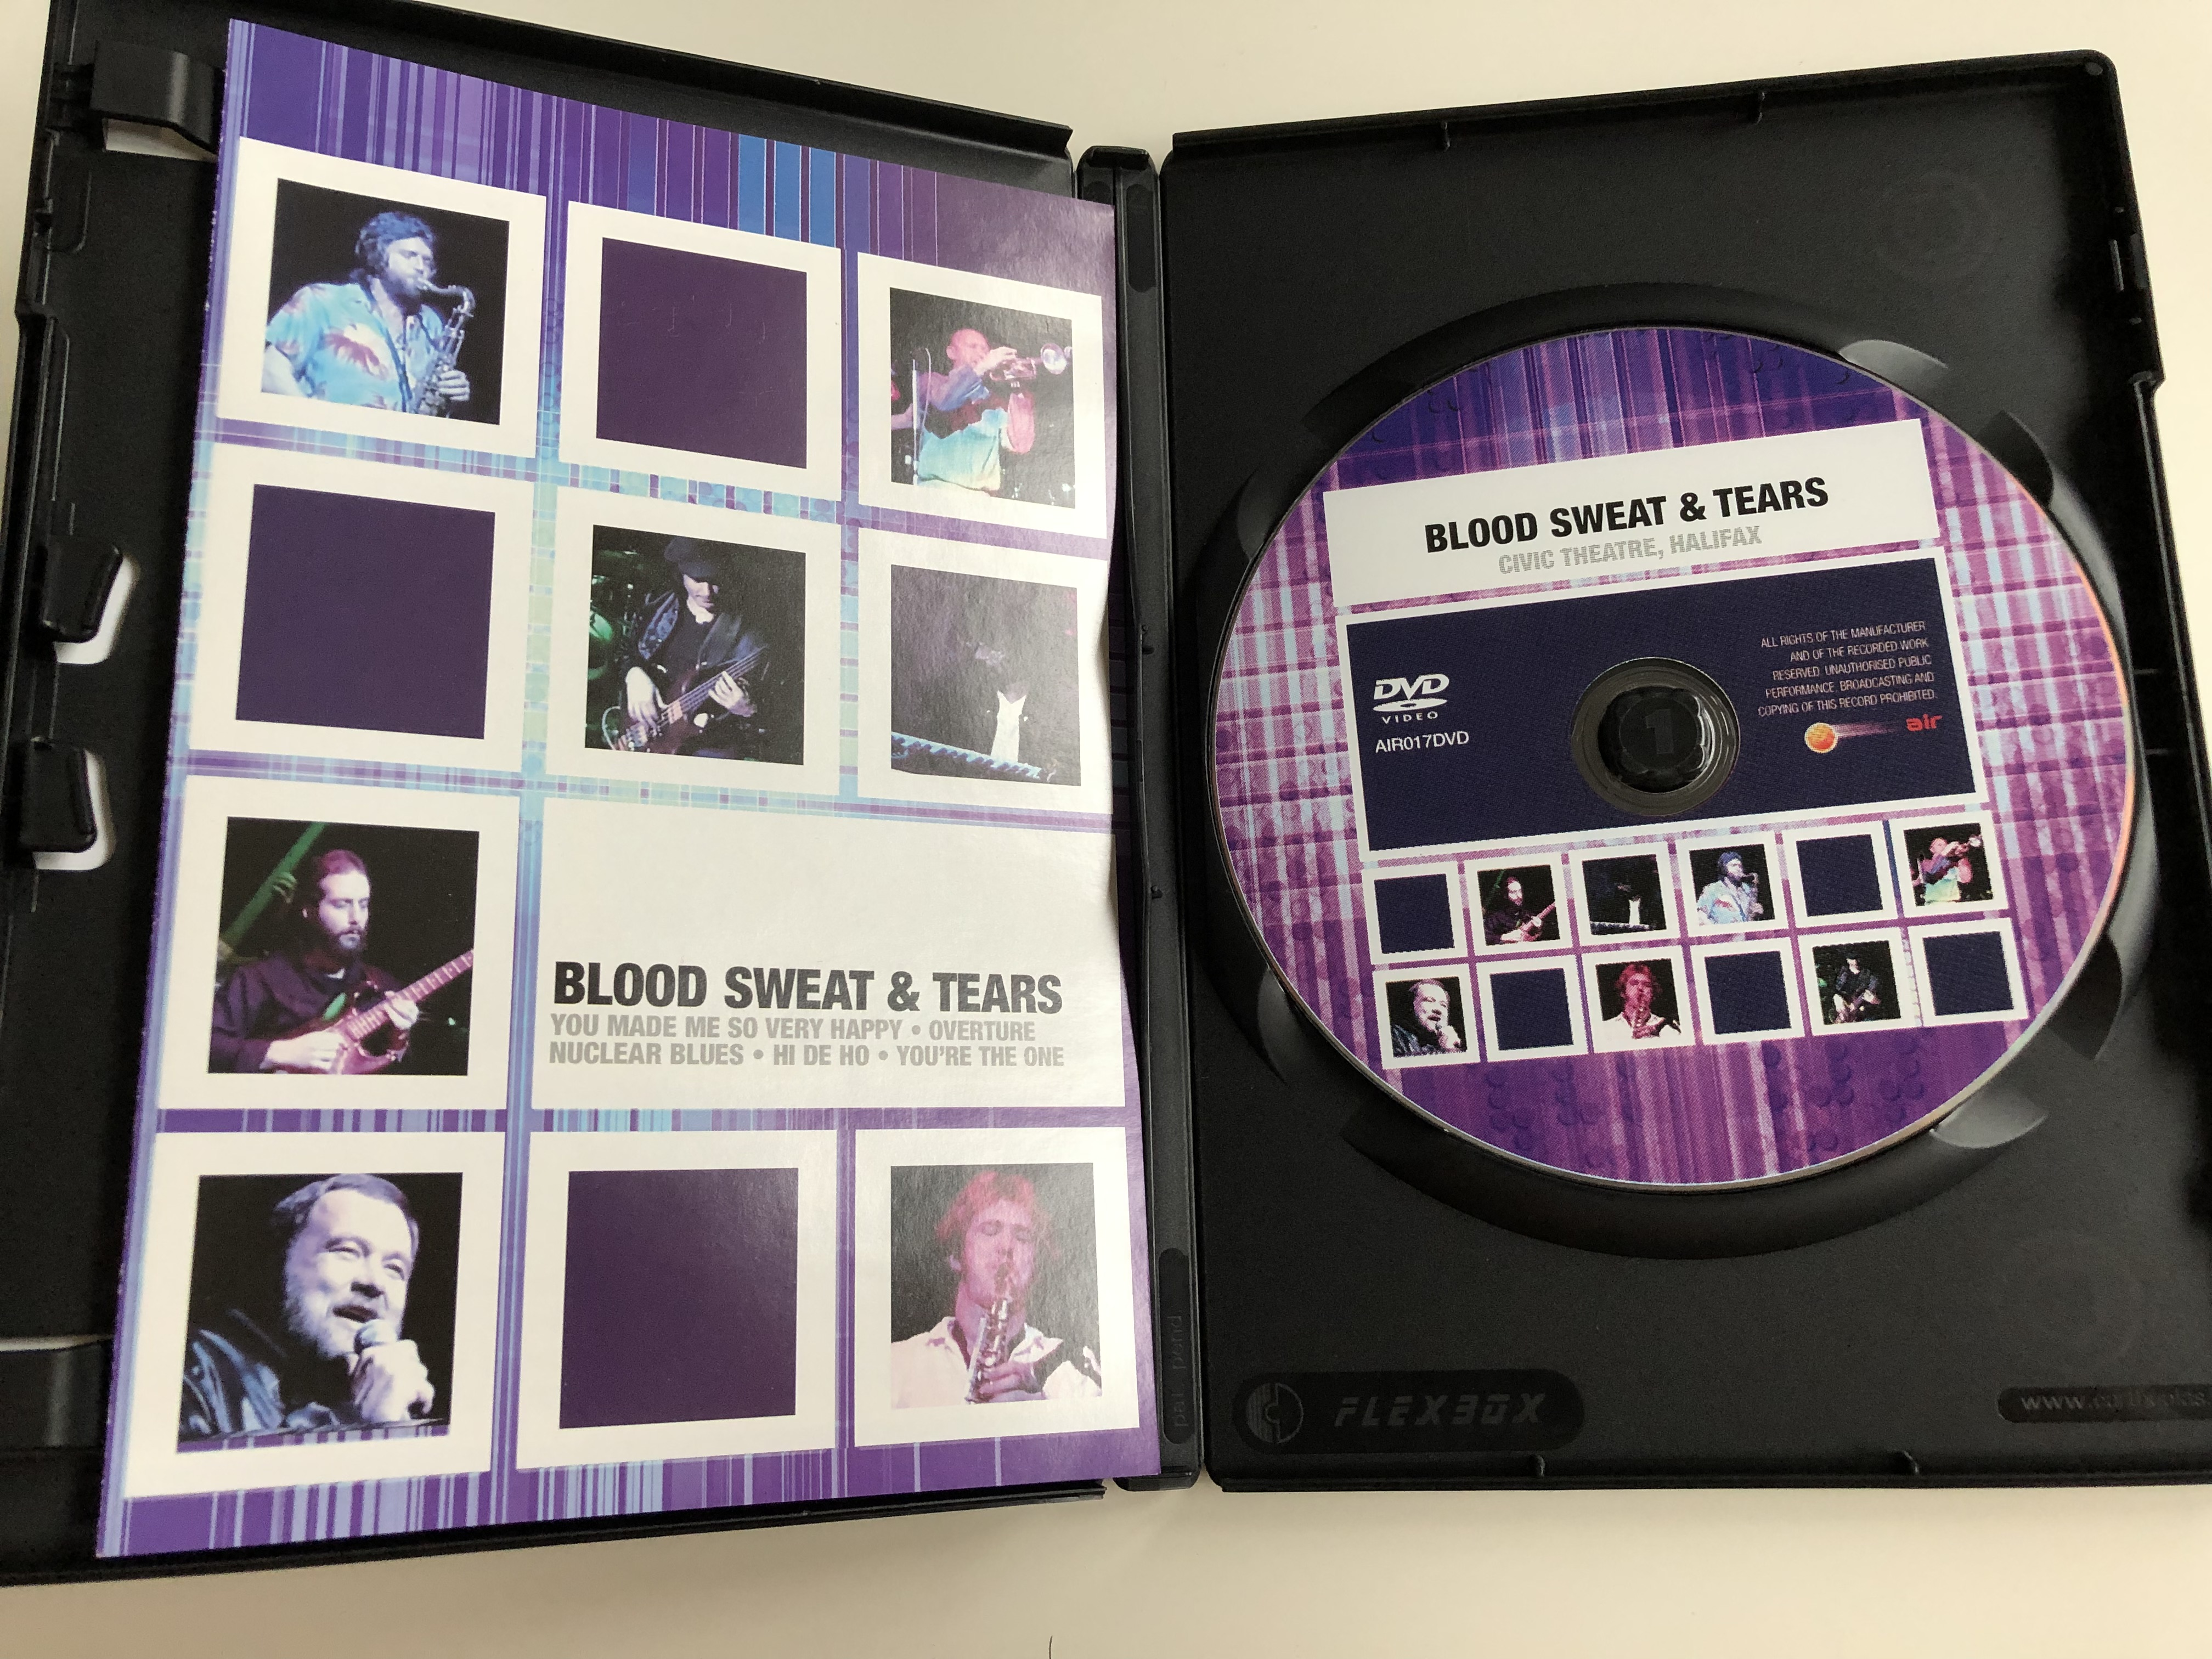 blood-sweat-tears-you-made-me-so-very-happy-overture-nuclear-blues-hi-de-ho-you-re-the-one-civic-theatre-halifax-air017dvd-2-.jpg